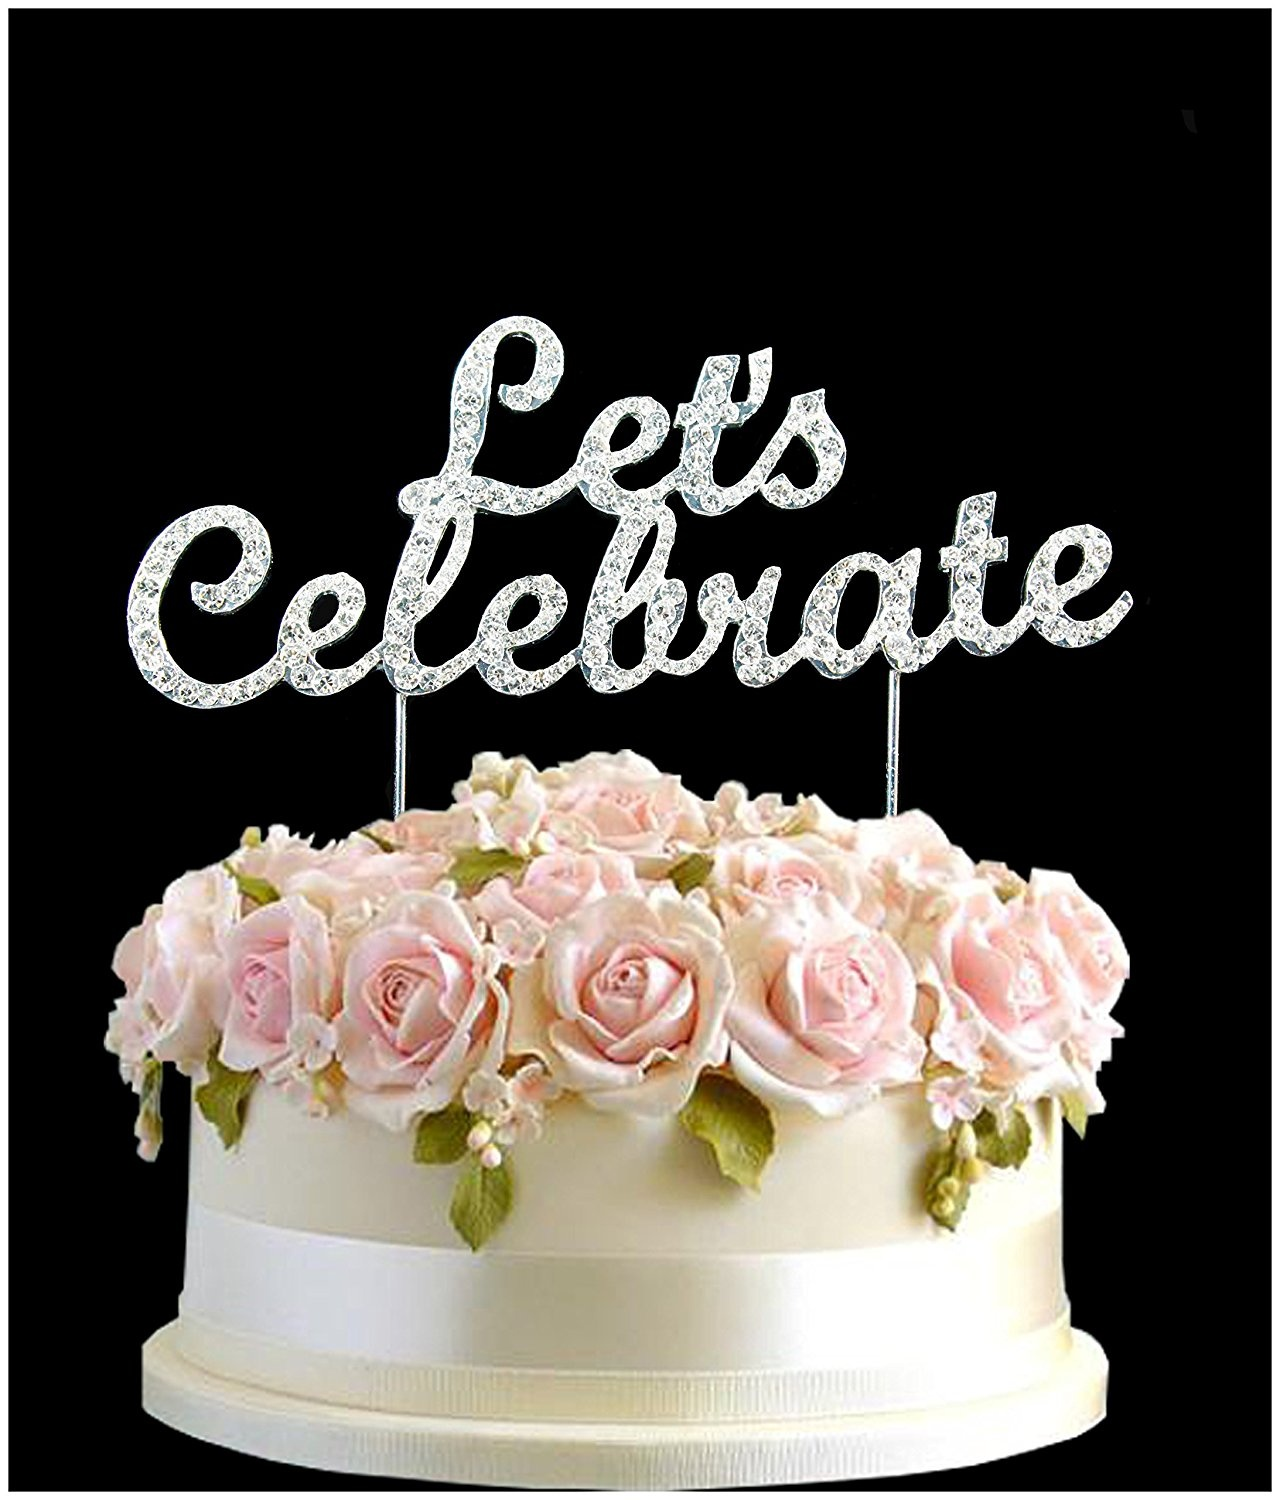 Rhinestone Lets Celebrate Wedding Birthday Cake Topper Number Pick